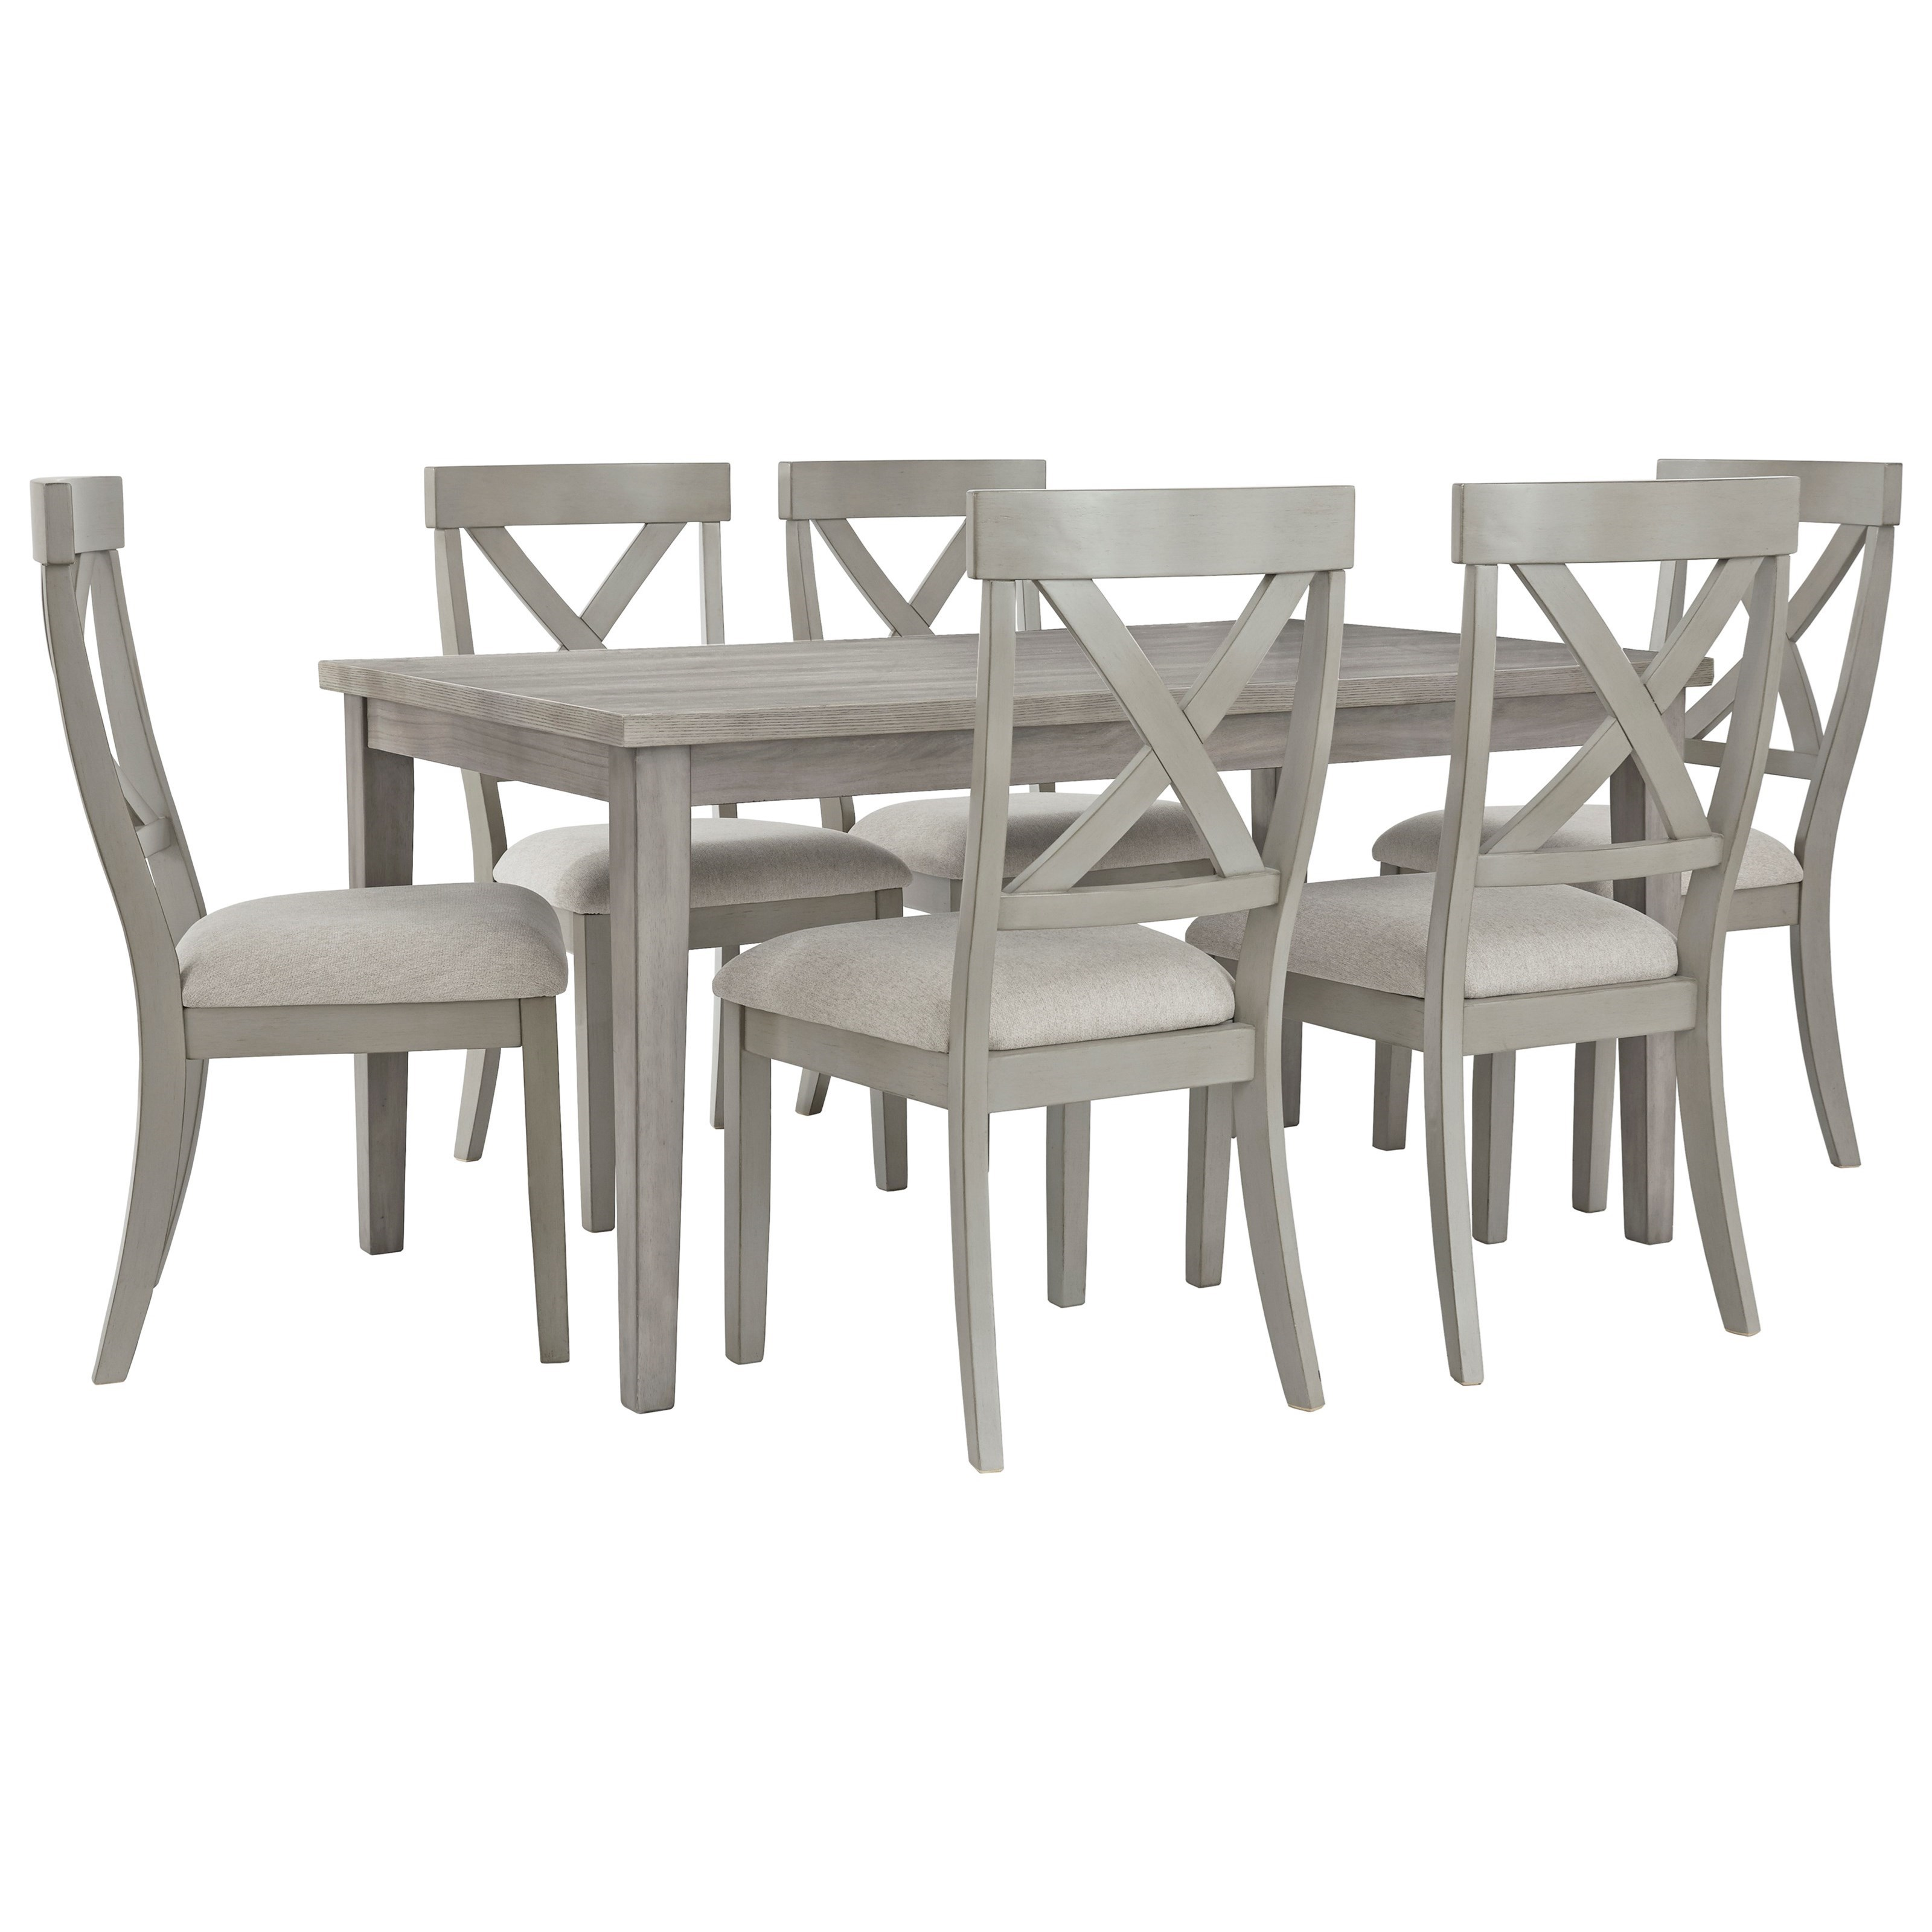 Parellen 7-Piece Table and Chair Set by Signature Design by Ashley at Northeast Factory Direct